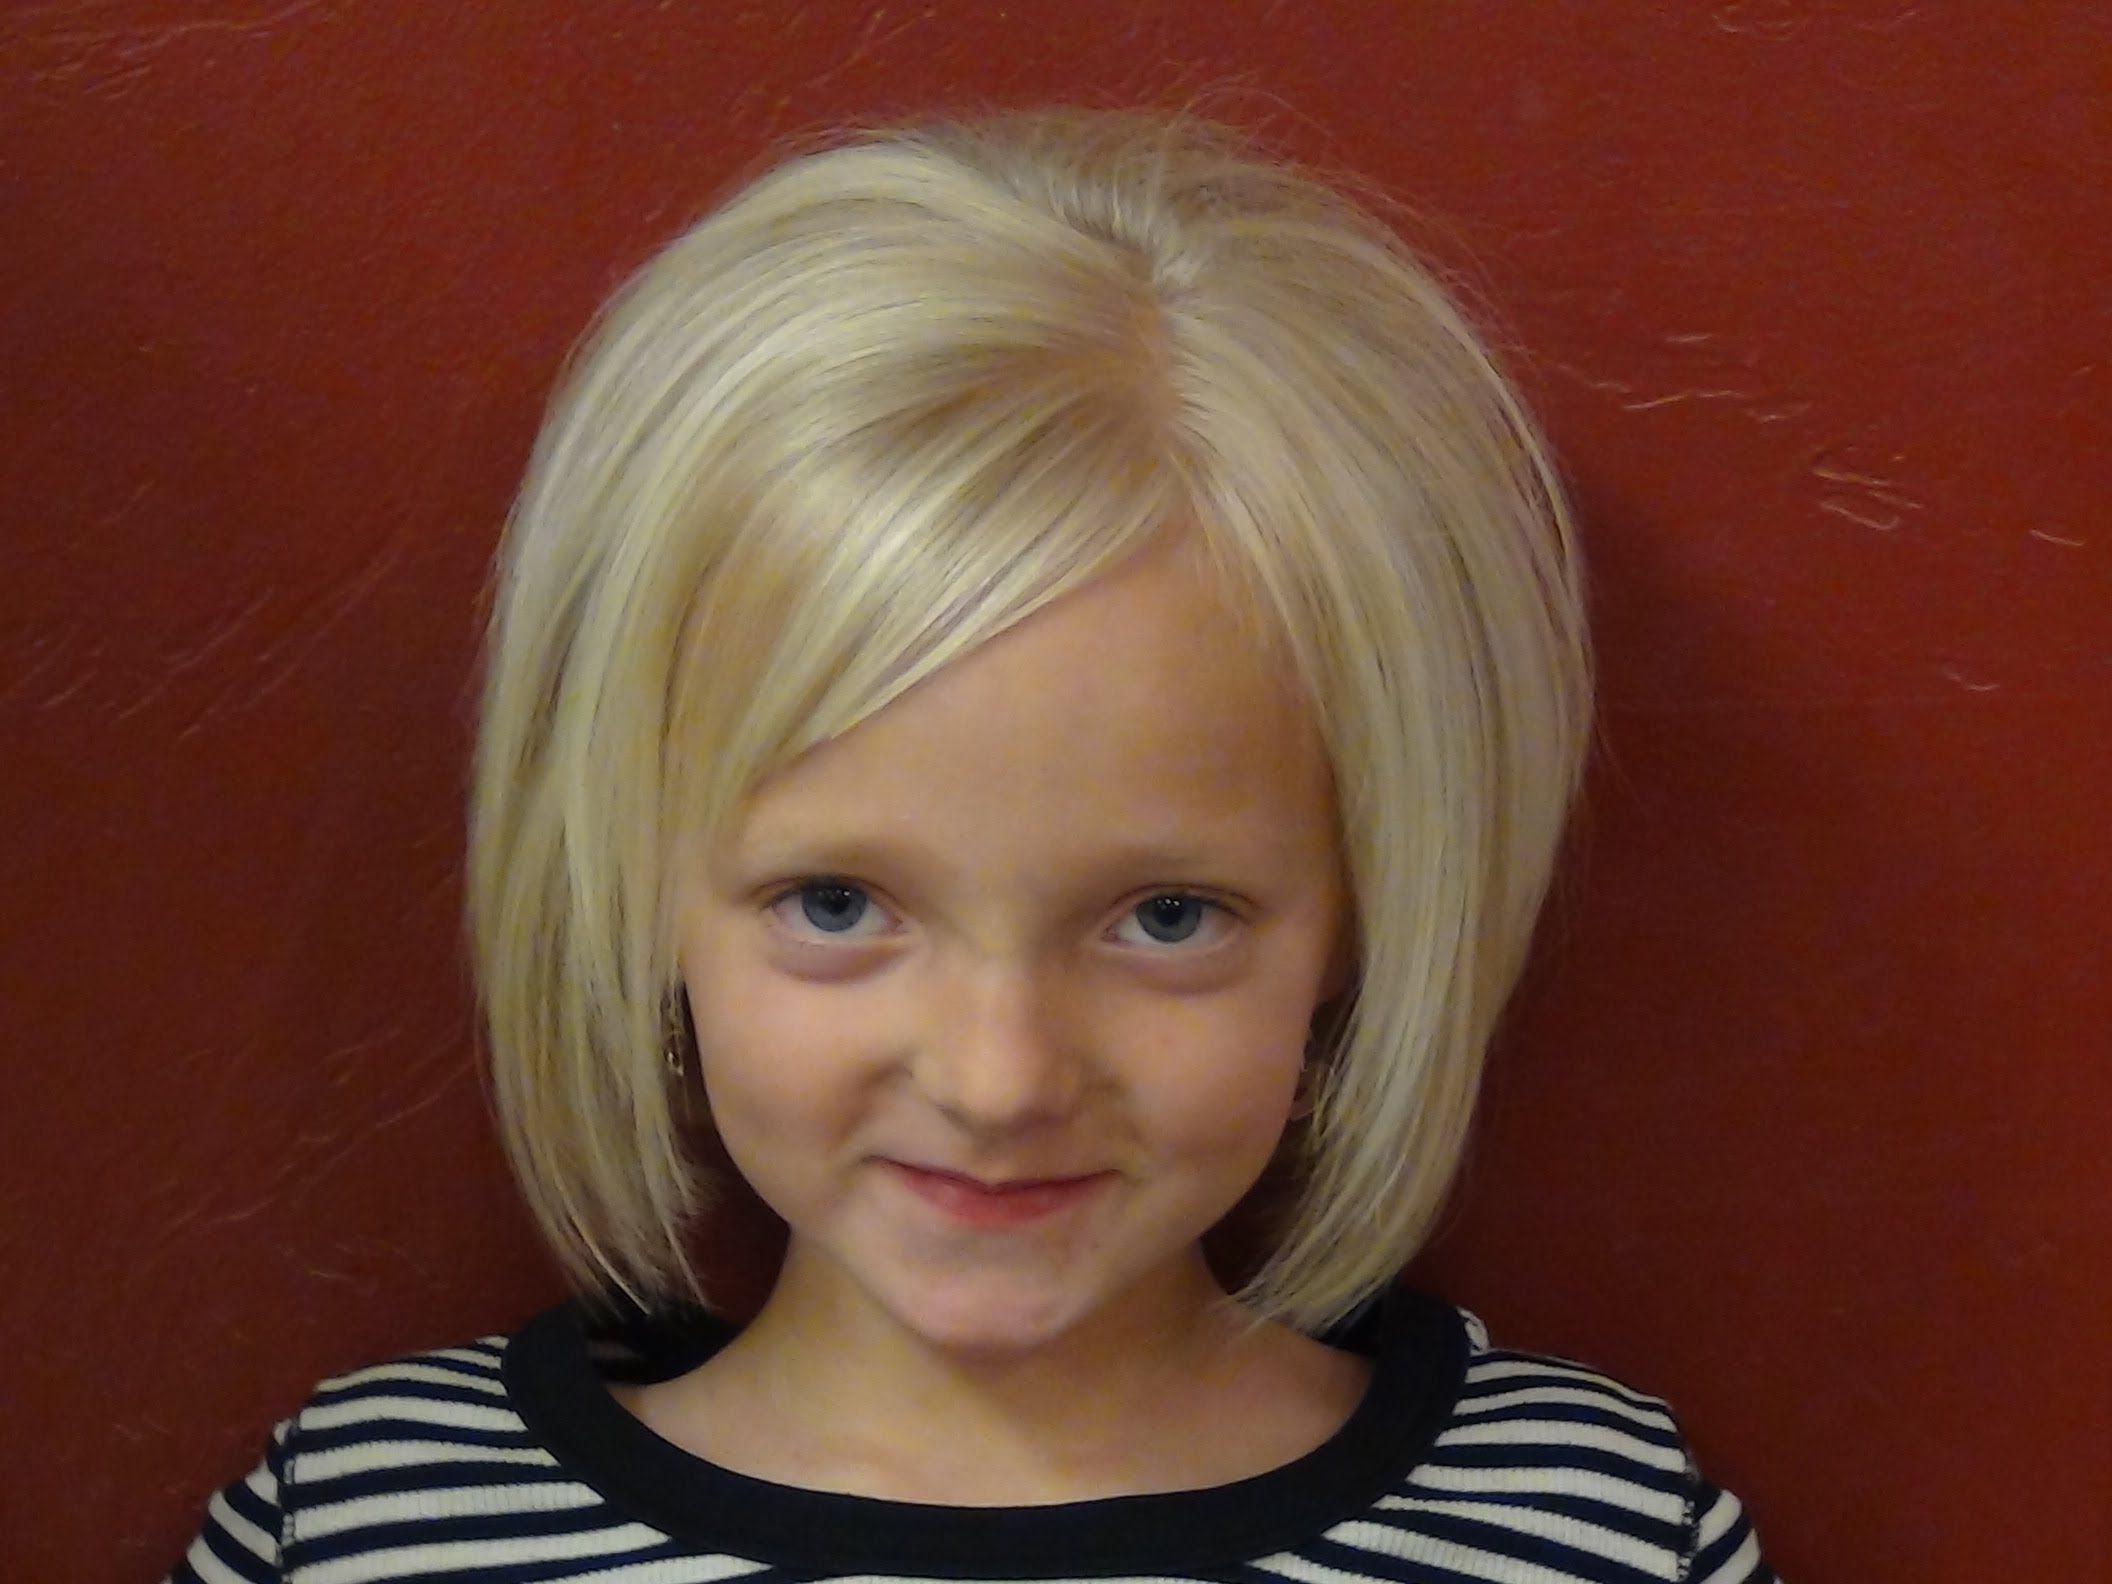 Cut short hairstyles into little girls hair tutorial a good haircut